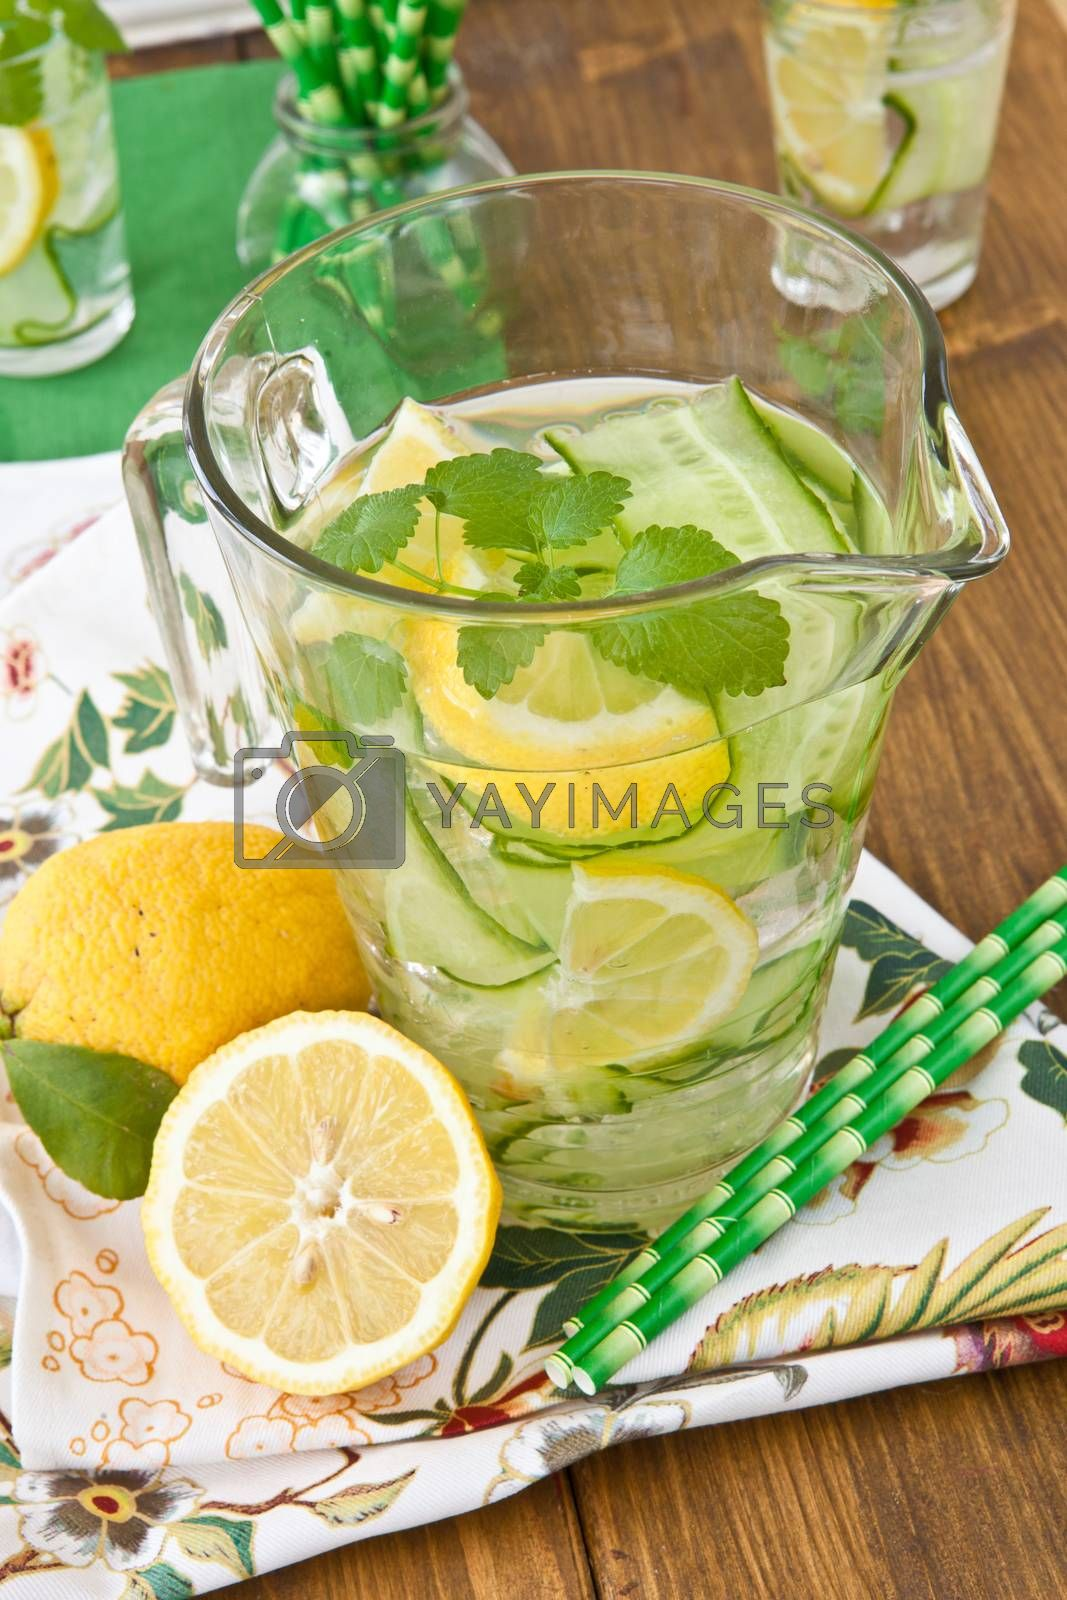 Royalty free image of Lemonade with cucumber and lemons by BarbaraNeveu